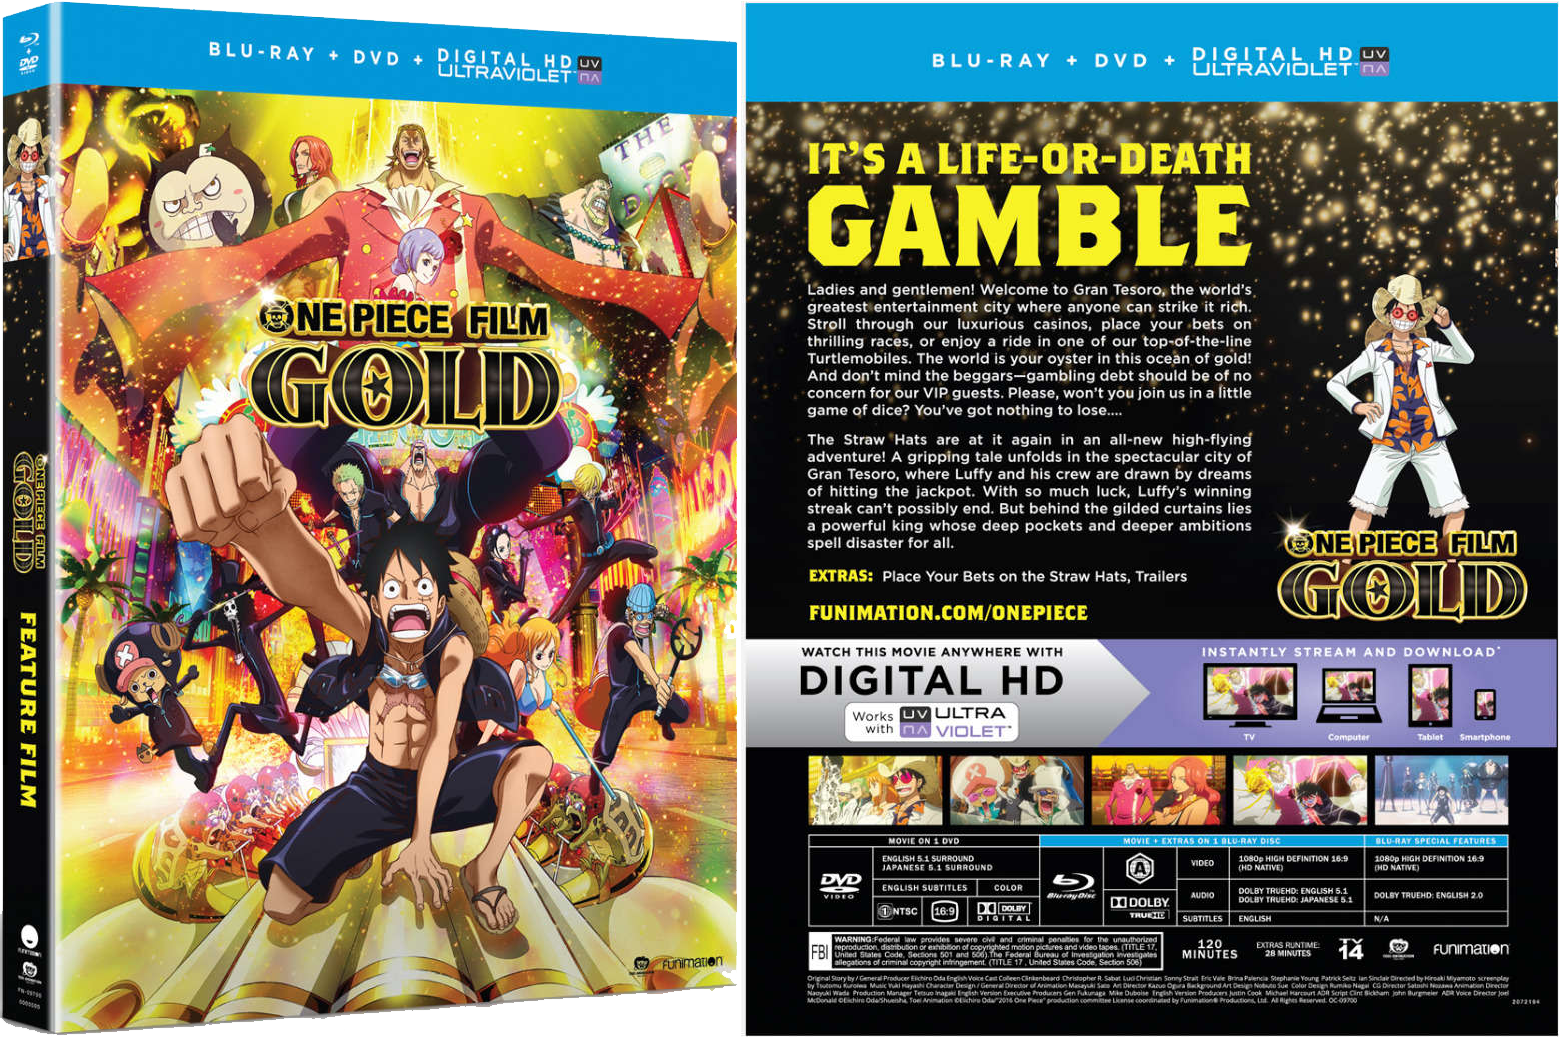 Funimations Home Video Release For One Piece Film Gold